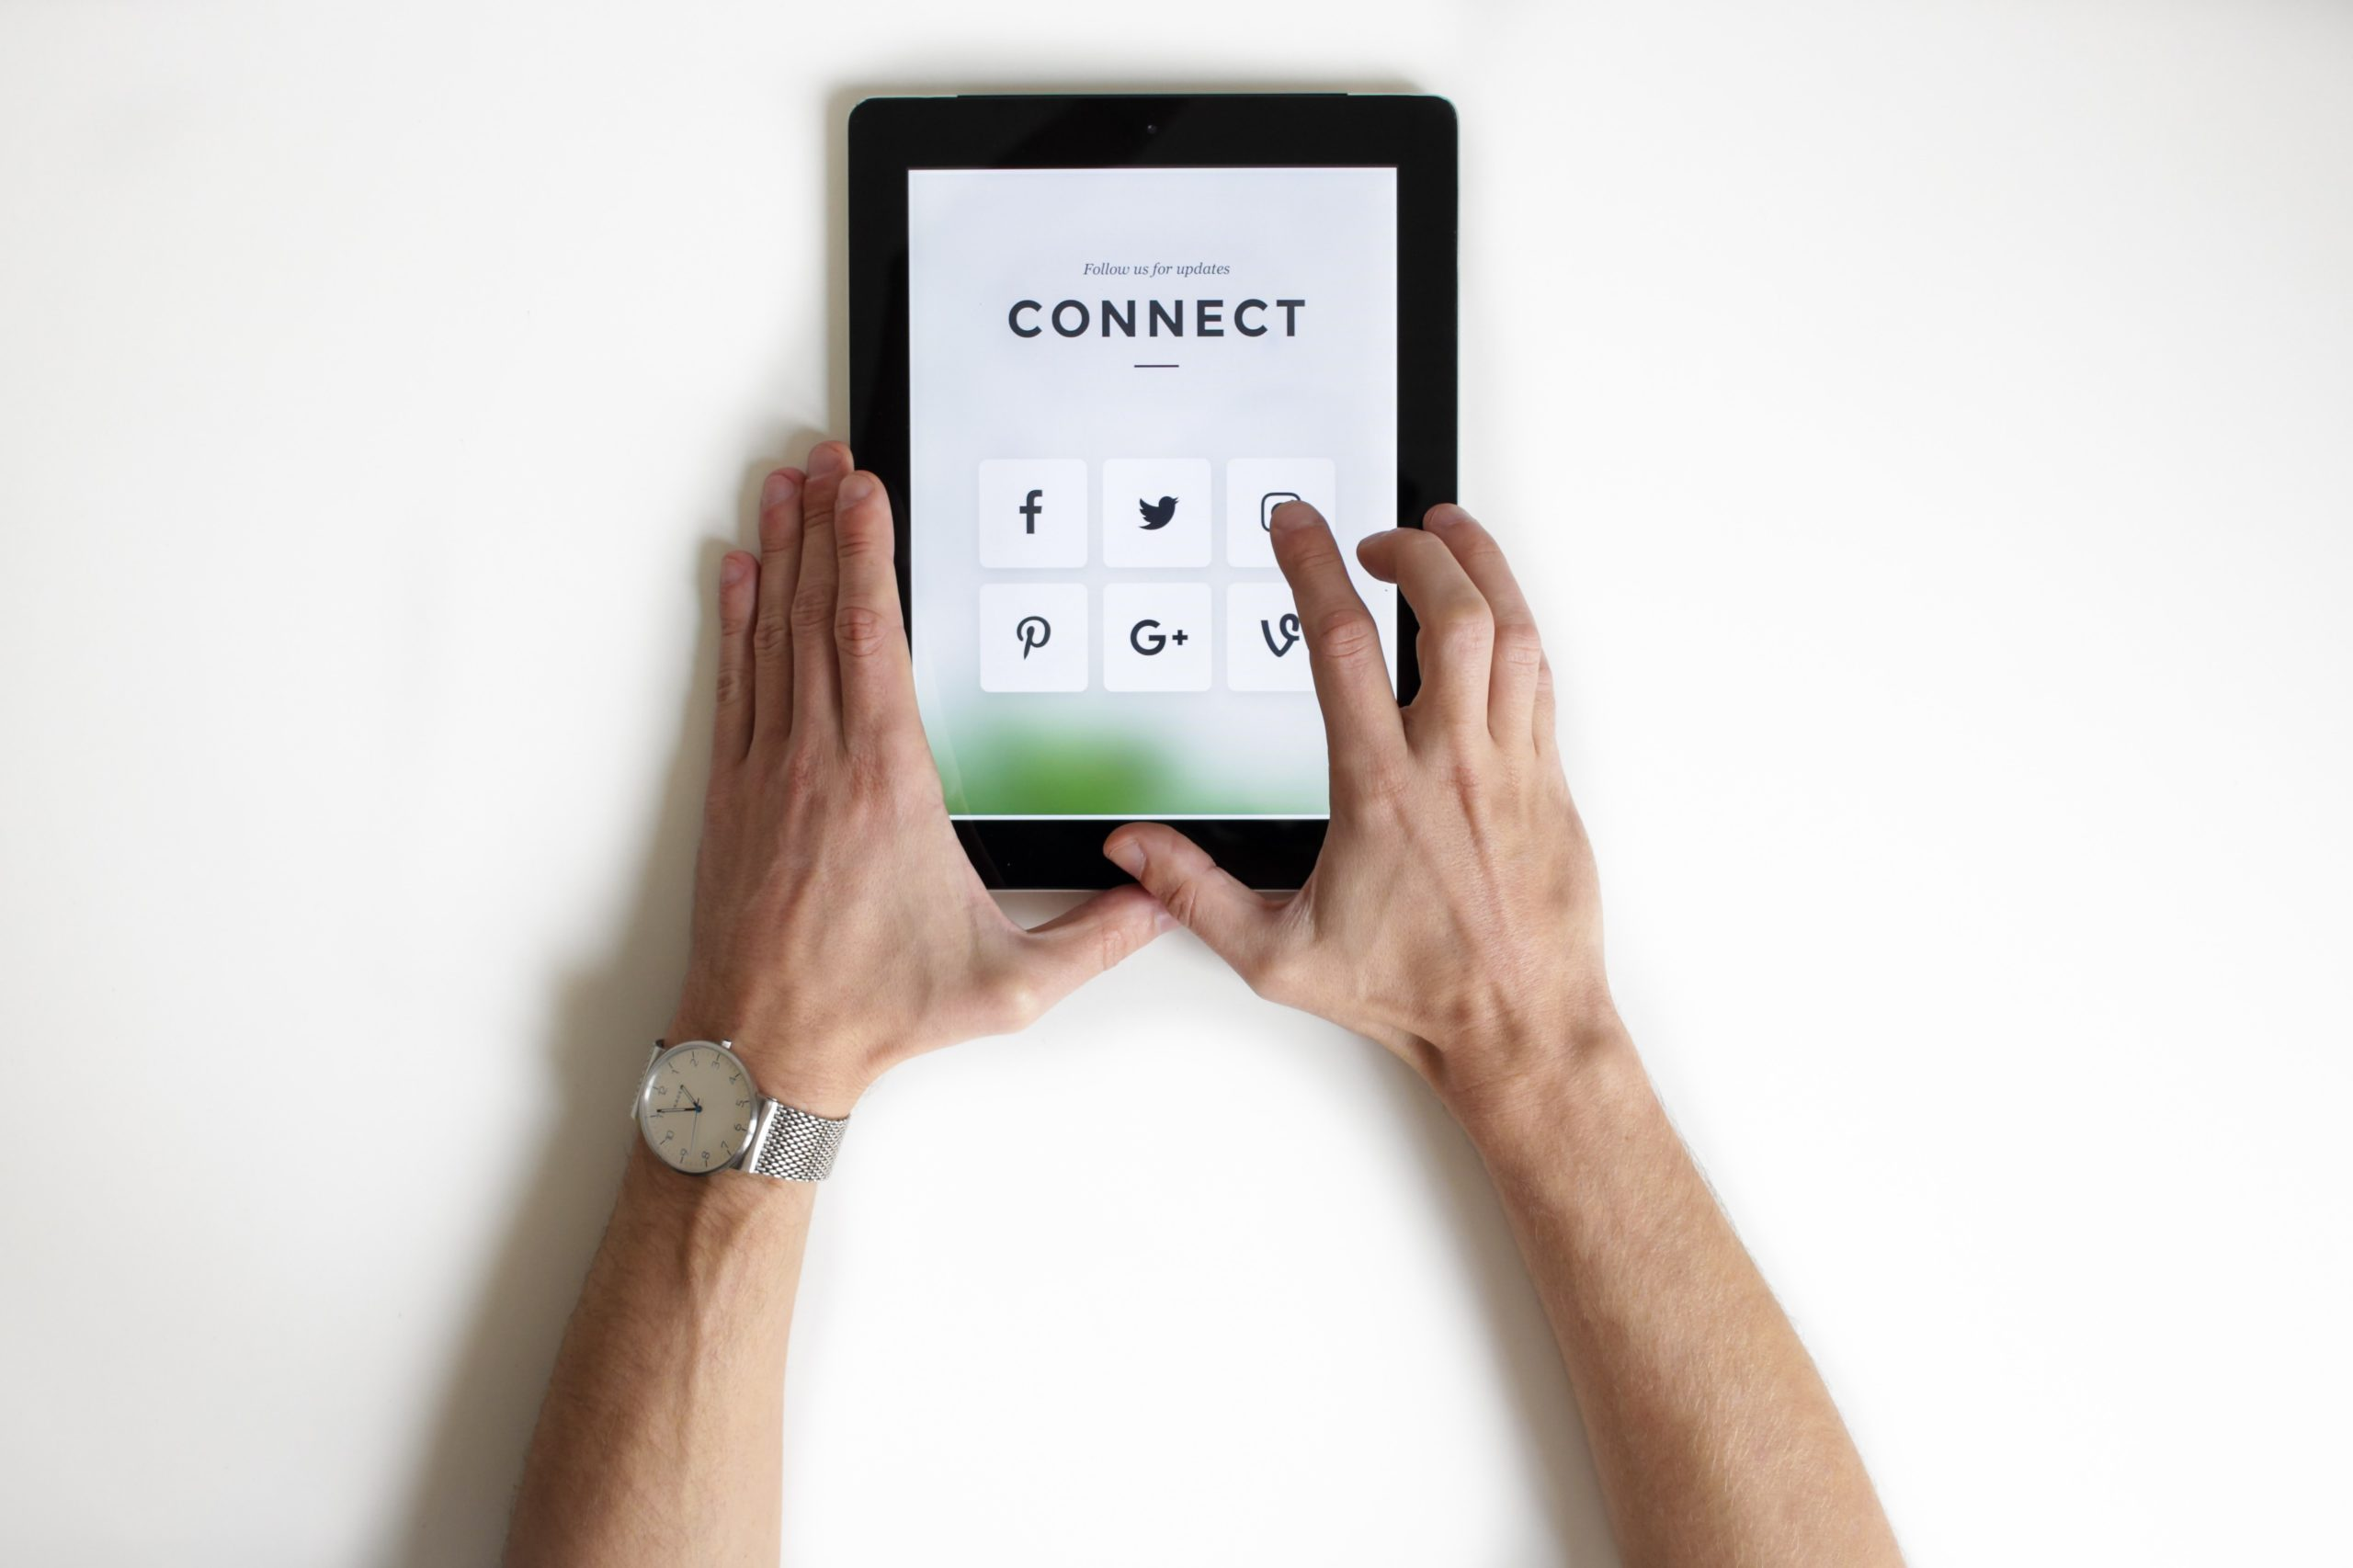 Tablet on white background, hands clicking social media icons on the screen